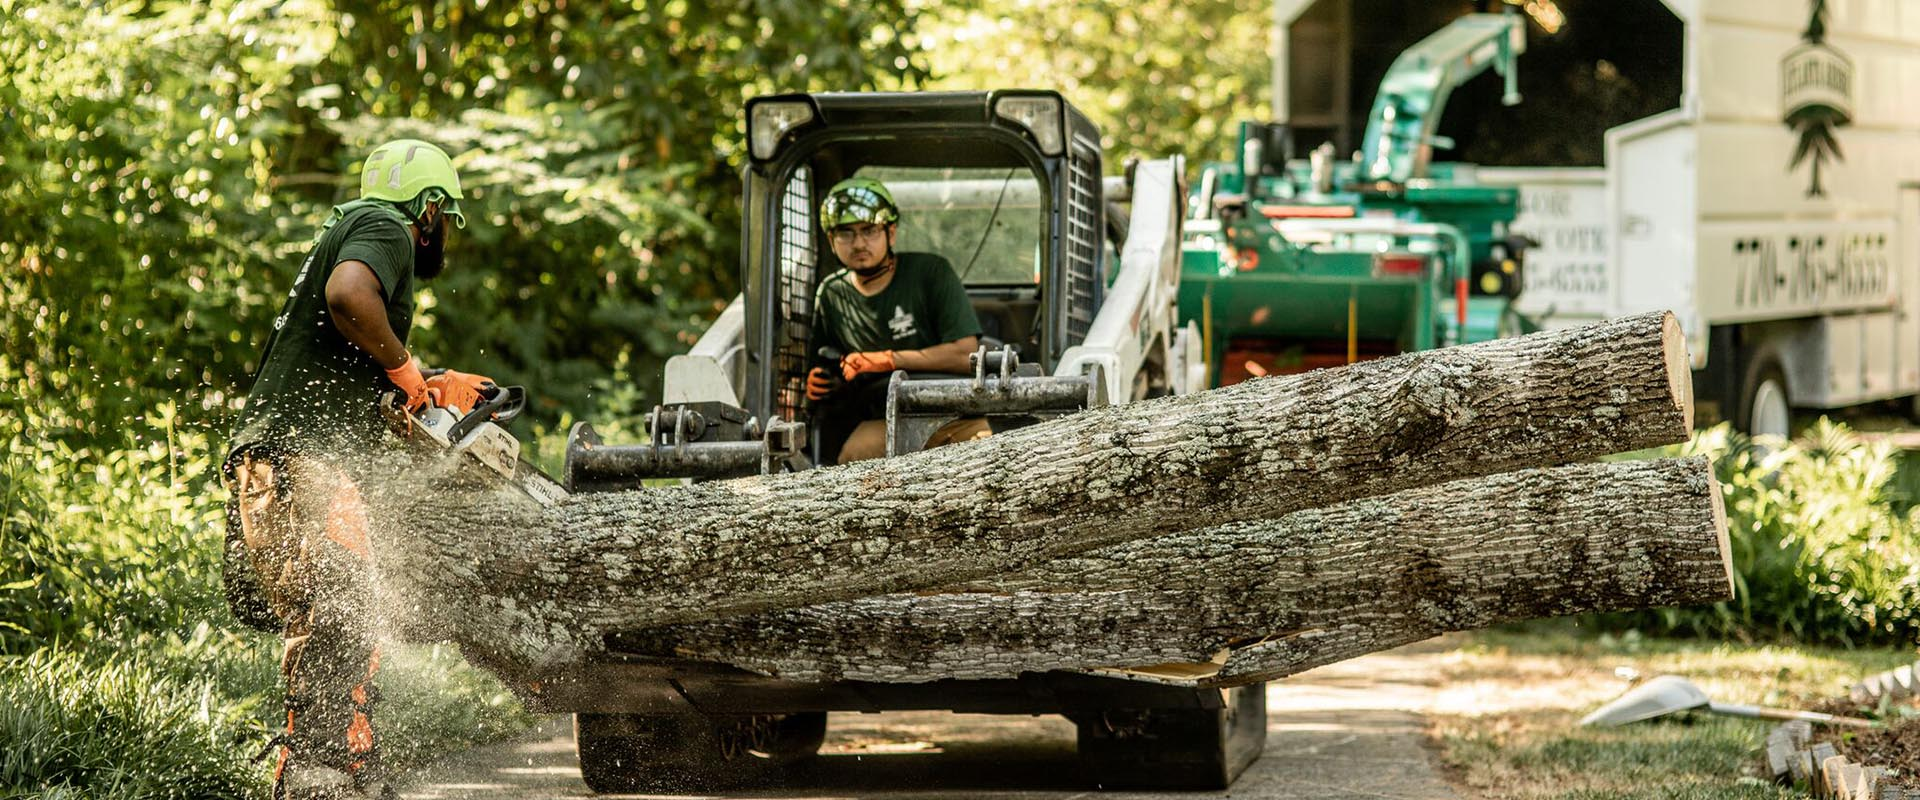 North Lauderdale FL Tree Trimming and Stump Grinding Services Home Page Image-We Offer Tree Trimming Services, Tree Removal, Tree Pruning, Tree Cutting, Residential and Commercial Tree Trimming Services, Storm Damage, Emergency Tree Removal, Land Clearing, Tree Companies, Tree Care Service, Stump Grinding, and we're the Best Tree Trimming Company Near You Guaranteed!